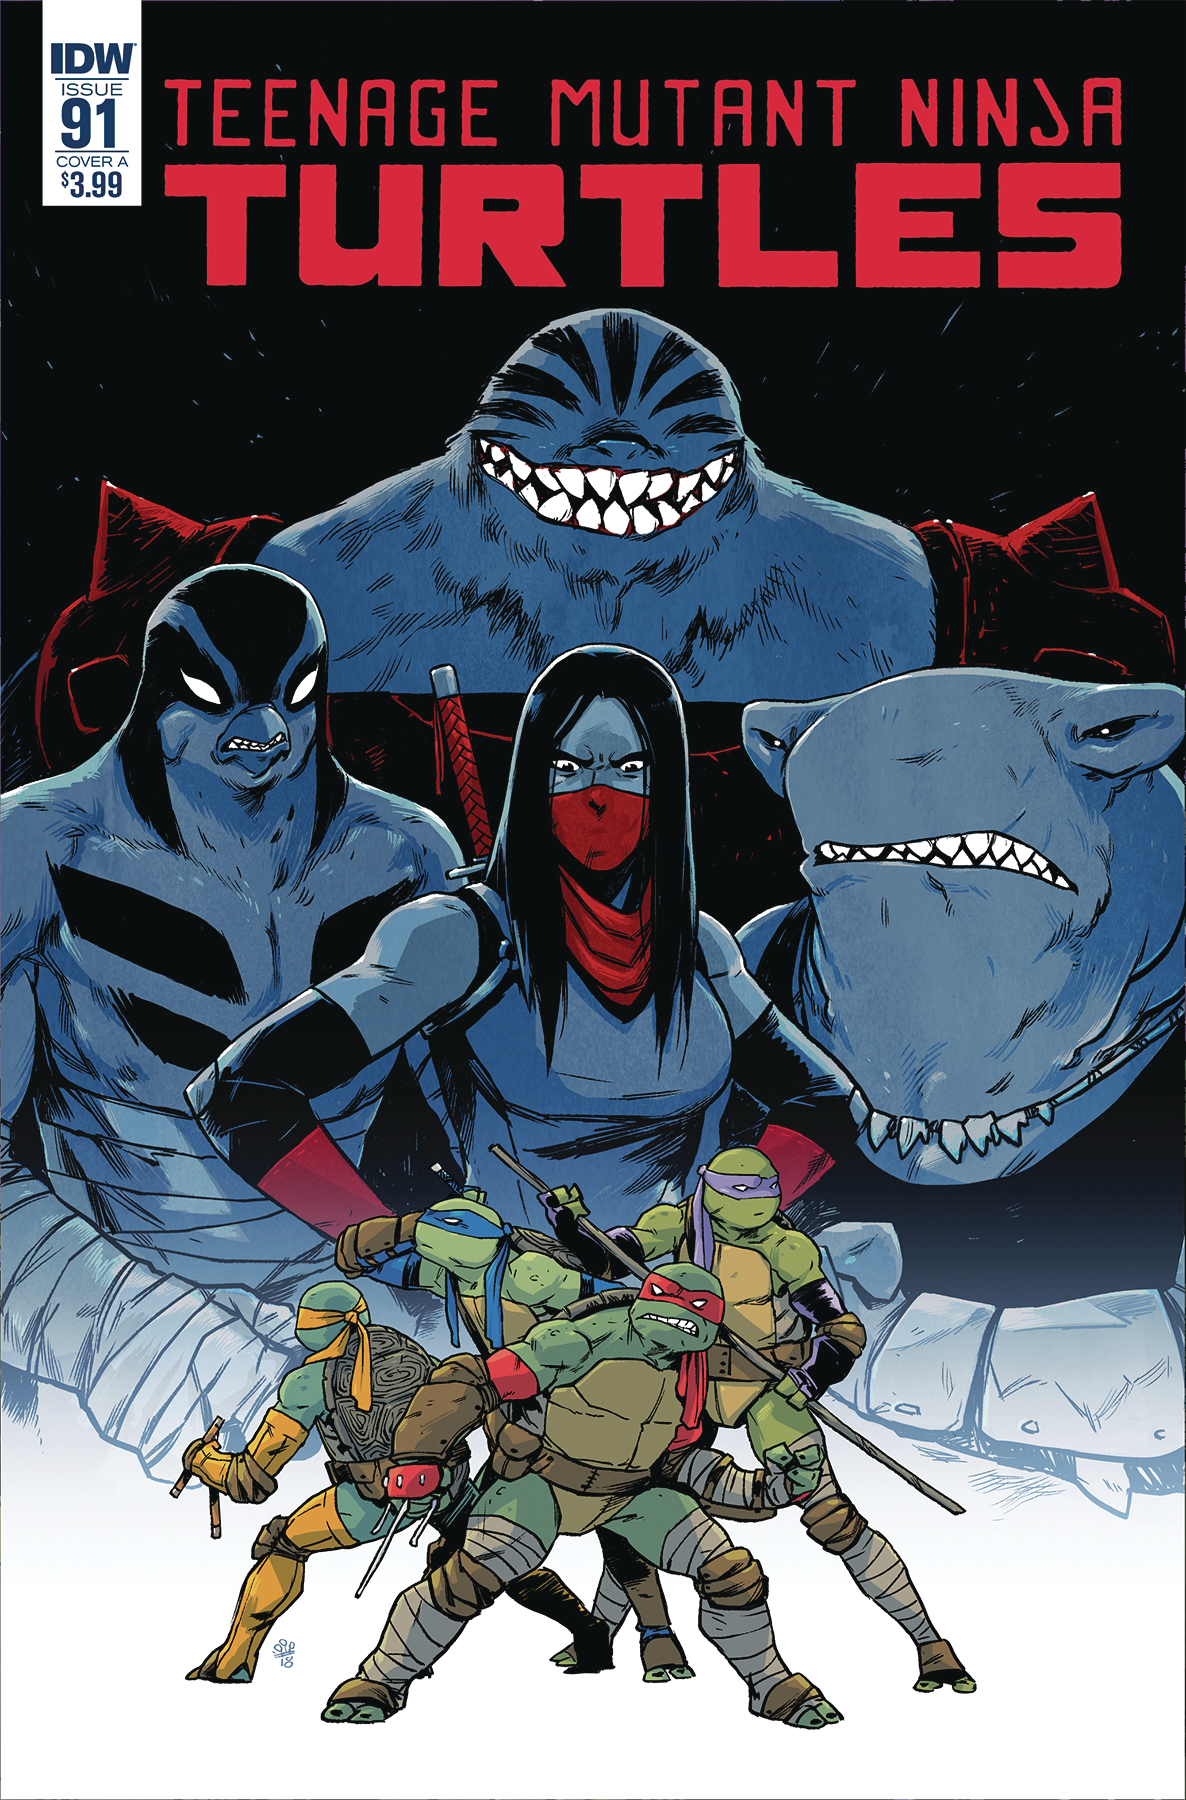 TMNT ONGOING #91 CVR A DIALYNAS